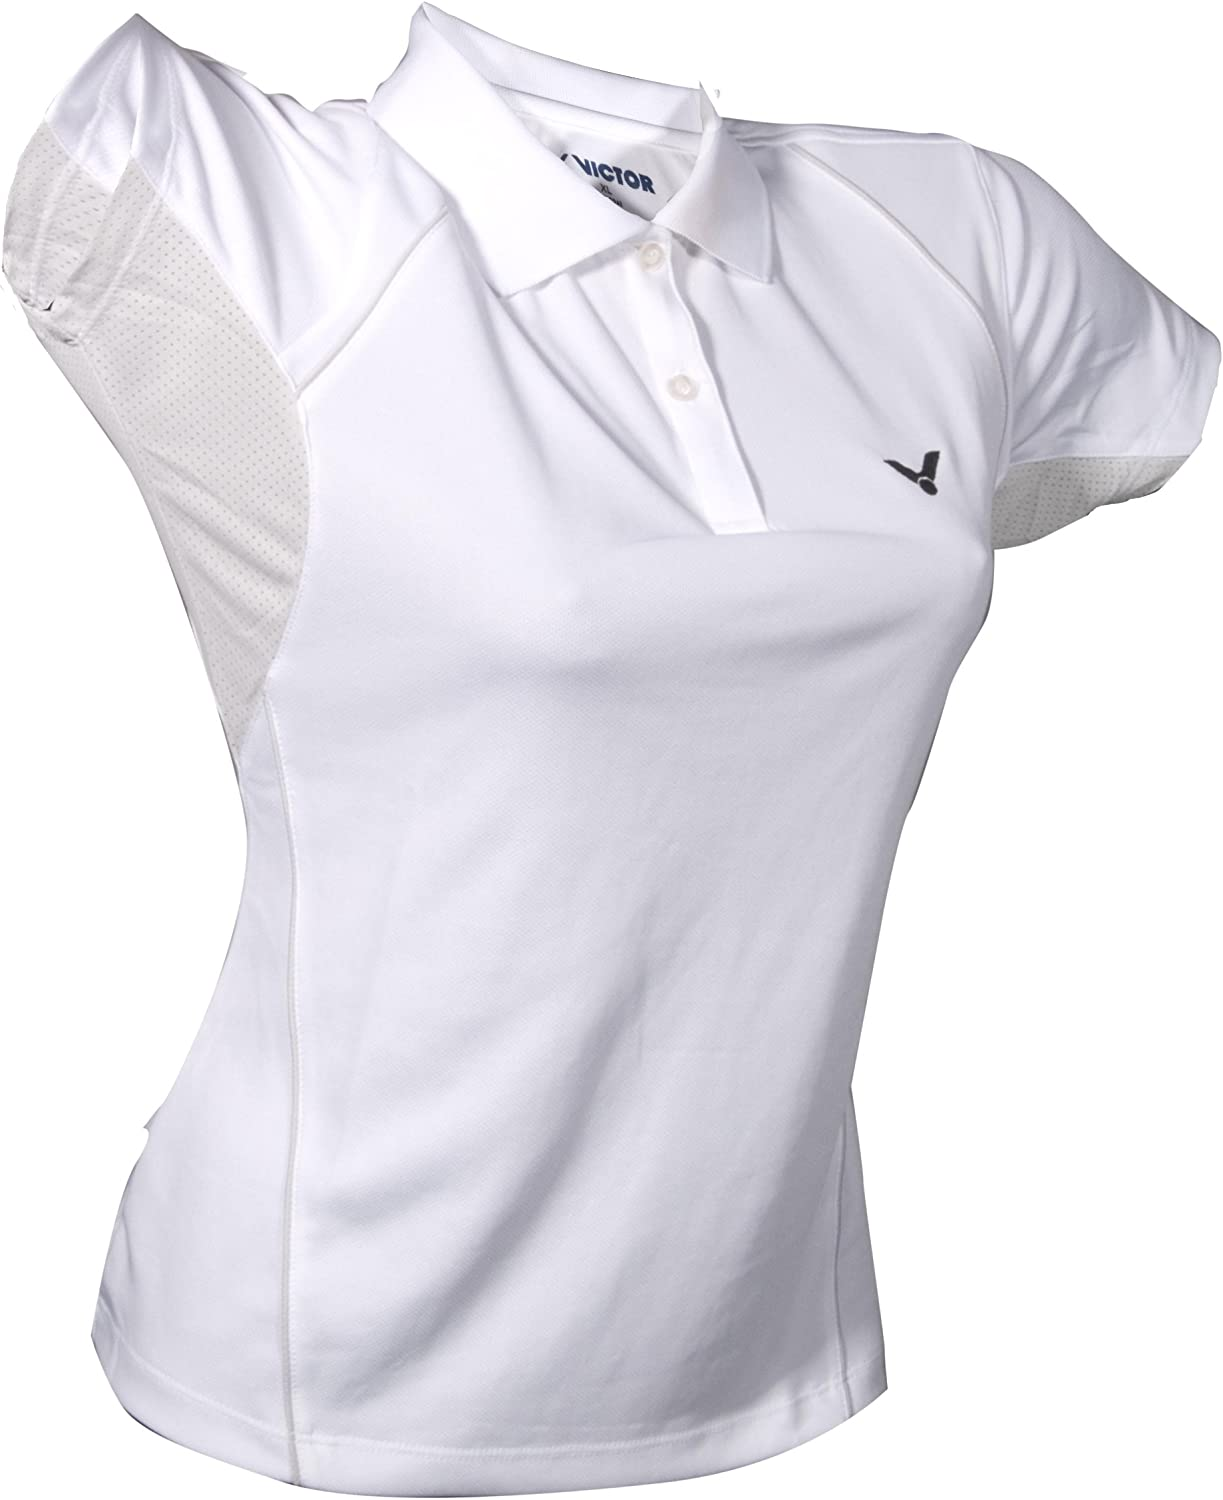 Victor Mujer Polo Camisa White 6030, Color Blanco/Gris: Amazon.es ...